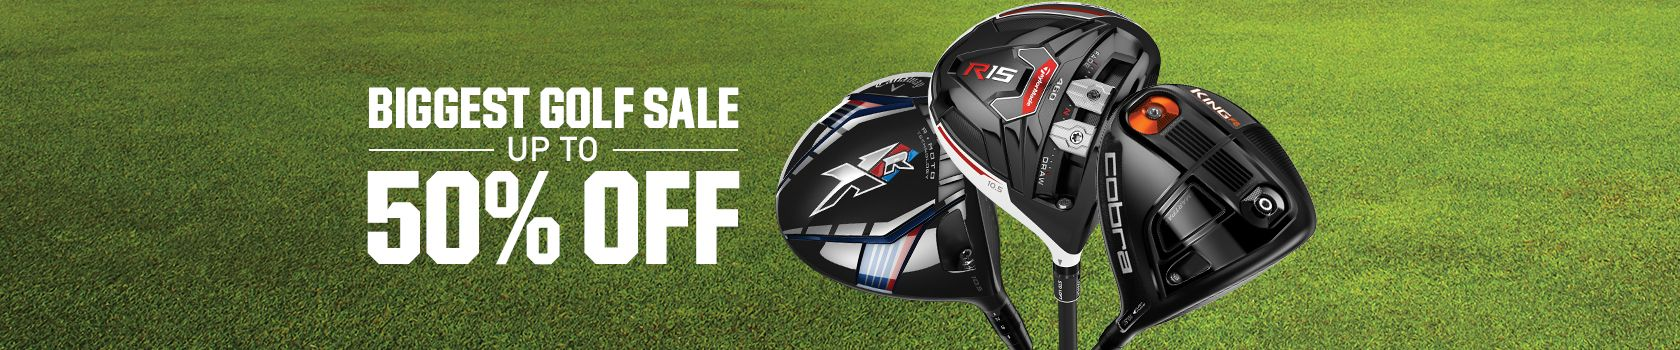 Biggest Golf Sale - Up To 50% off